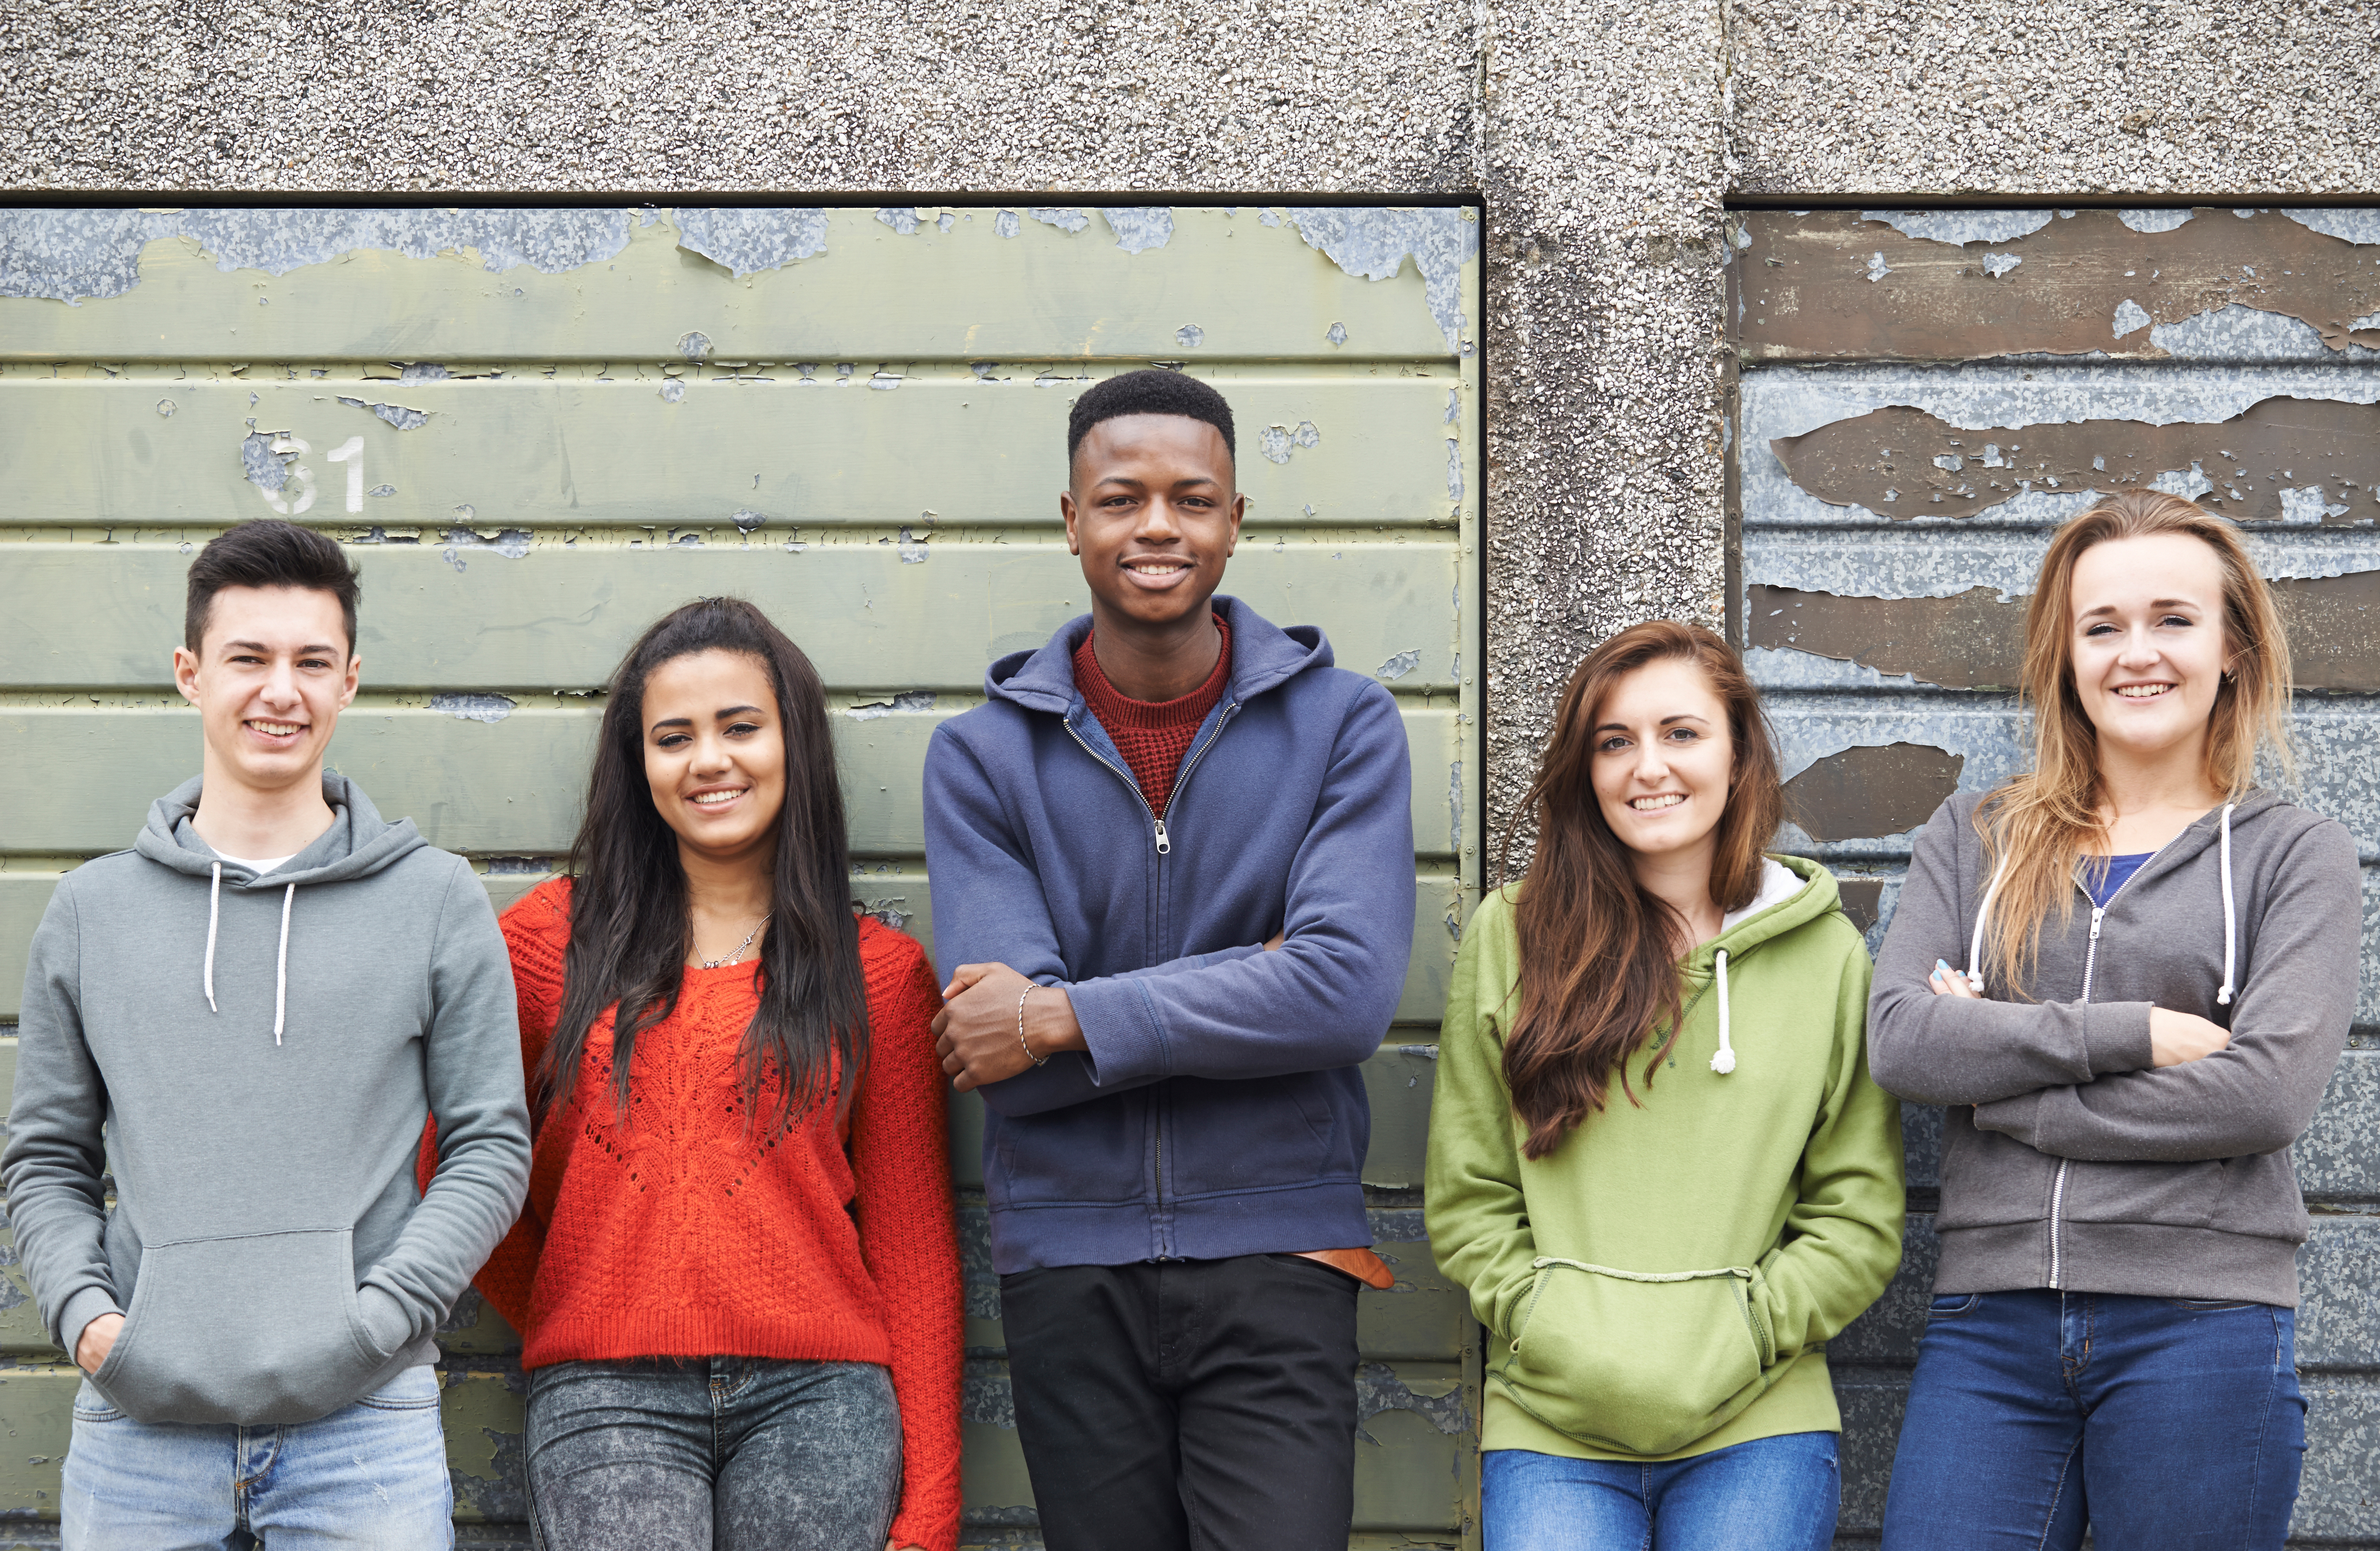 Group of teens standing next to each other against a wall